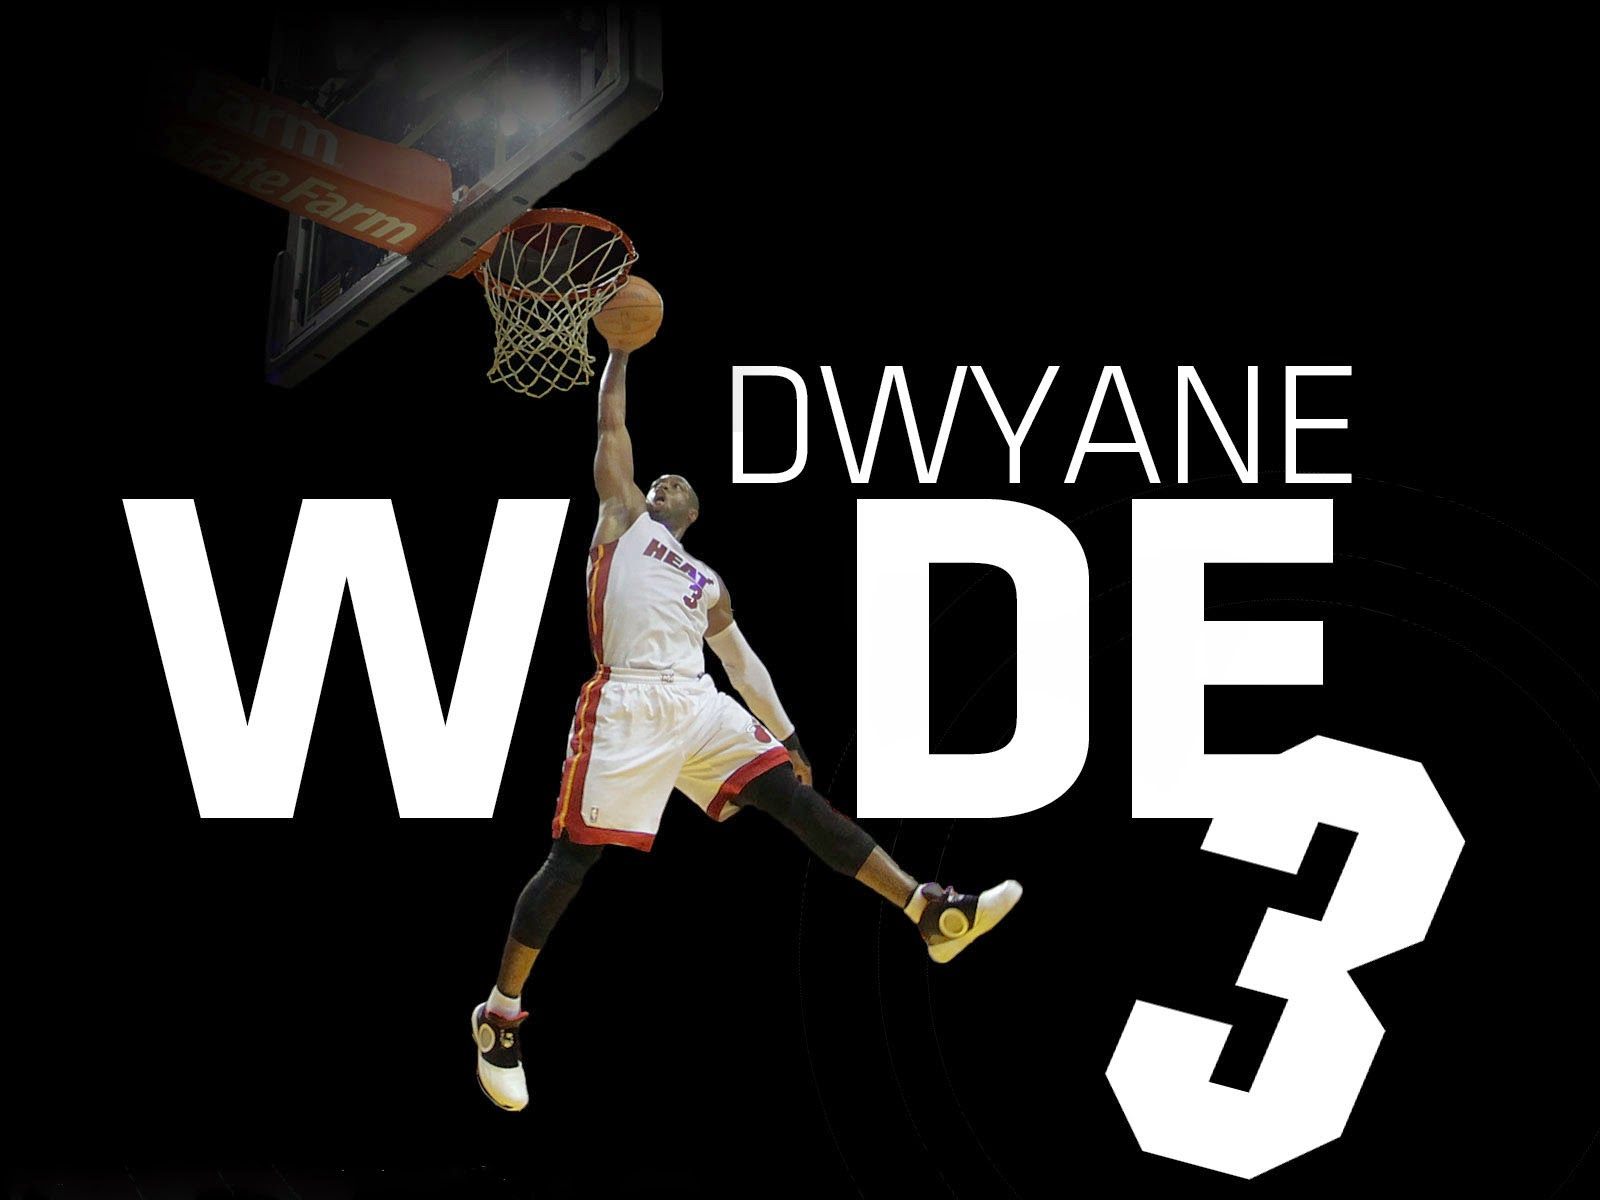 Wallpapers Dwyane Wade NBA HD Todo Imagenes 1600x1200